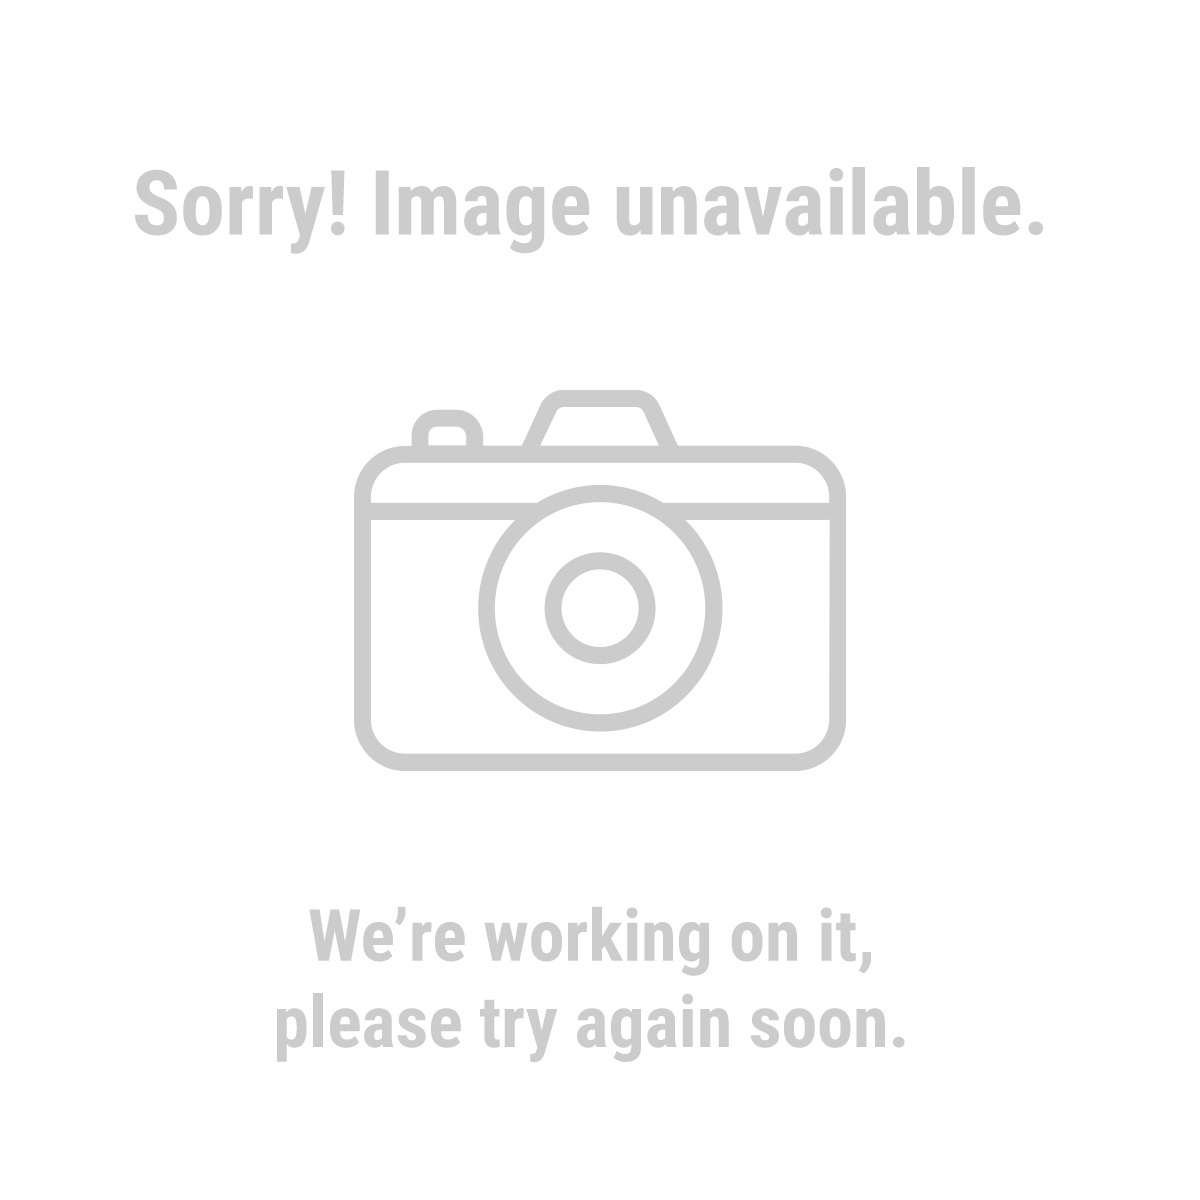 1 year inside track club membership 100 harbor freight gift card sciox Gallery